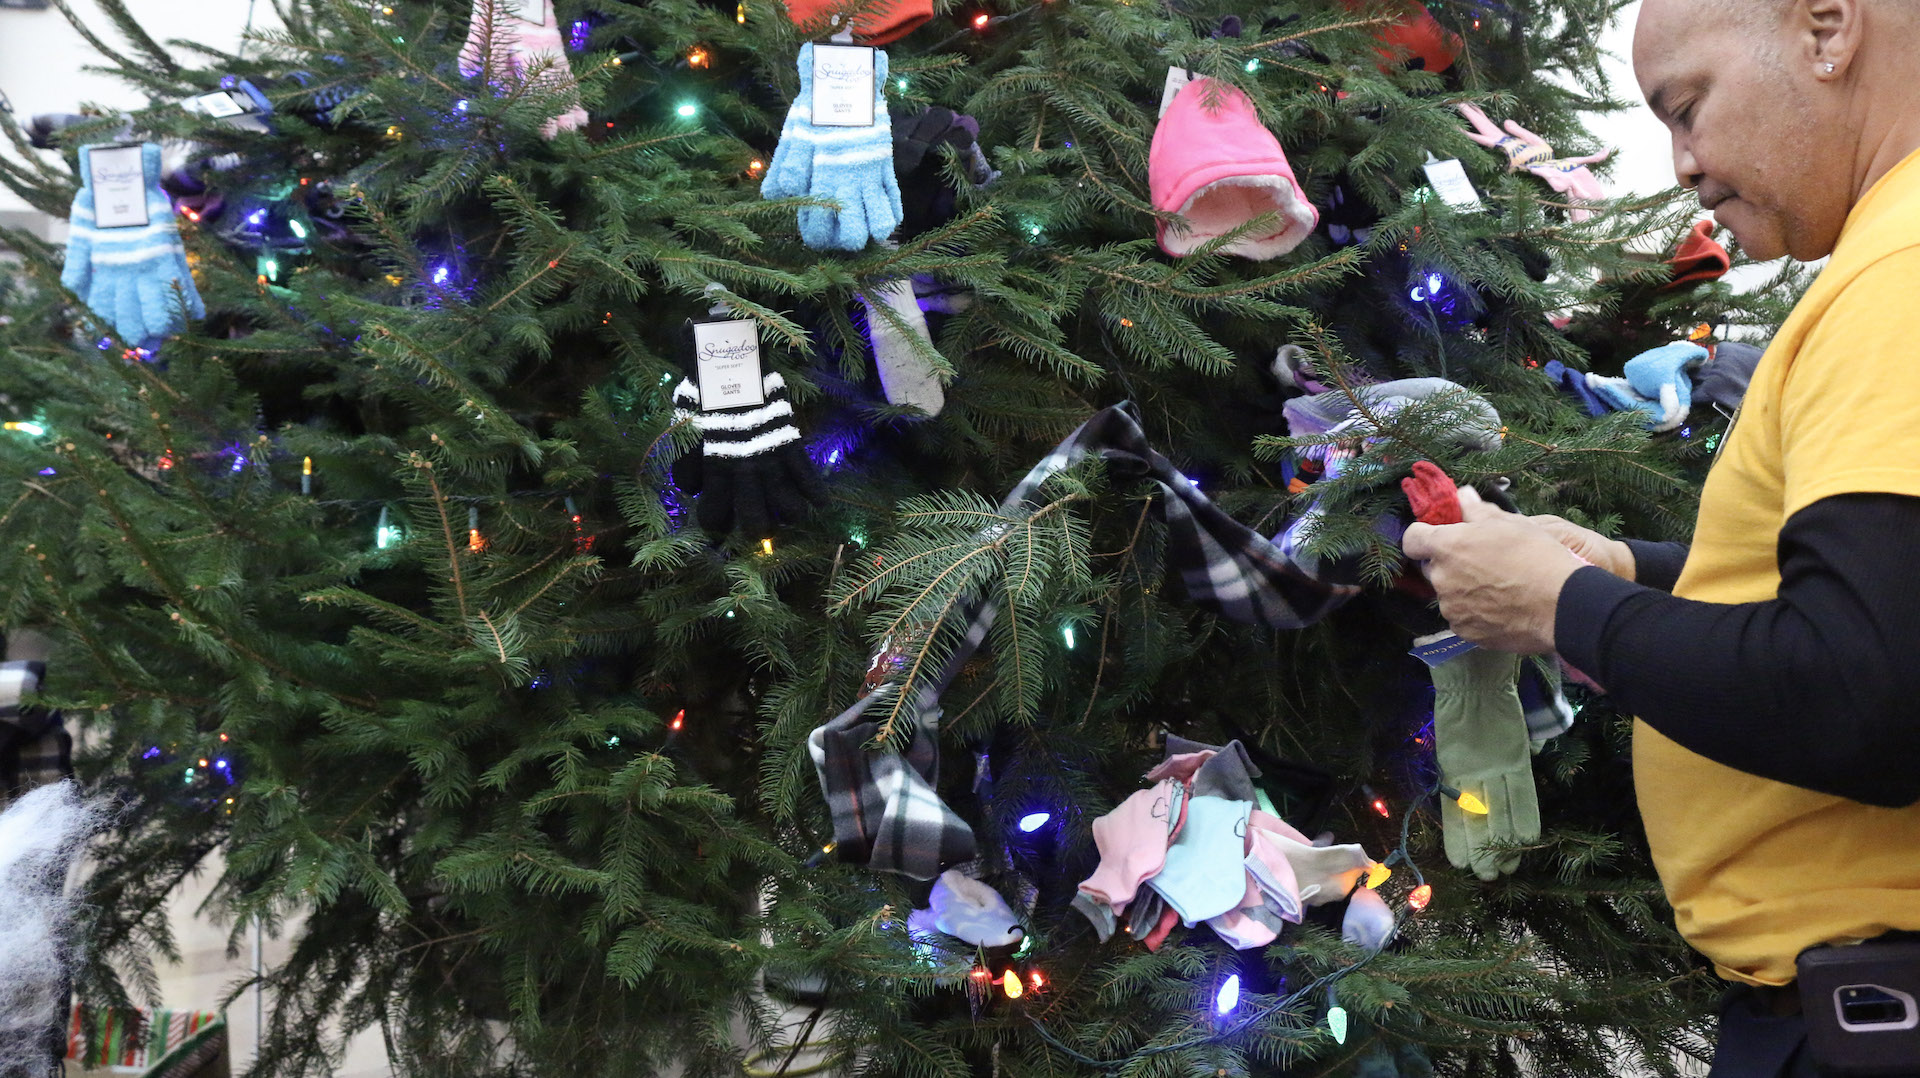 Donations on Christmas tree